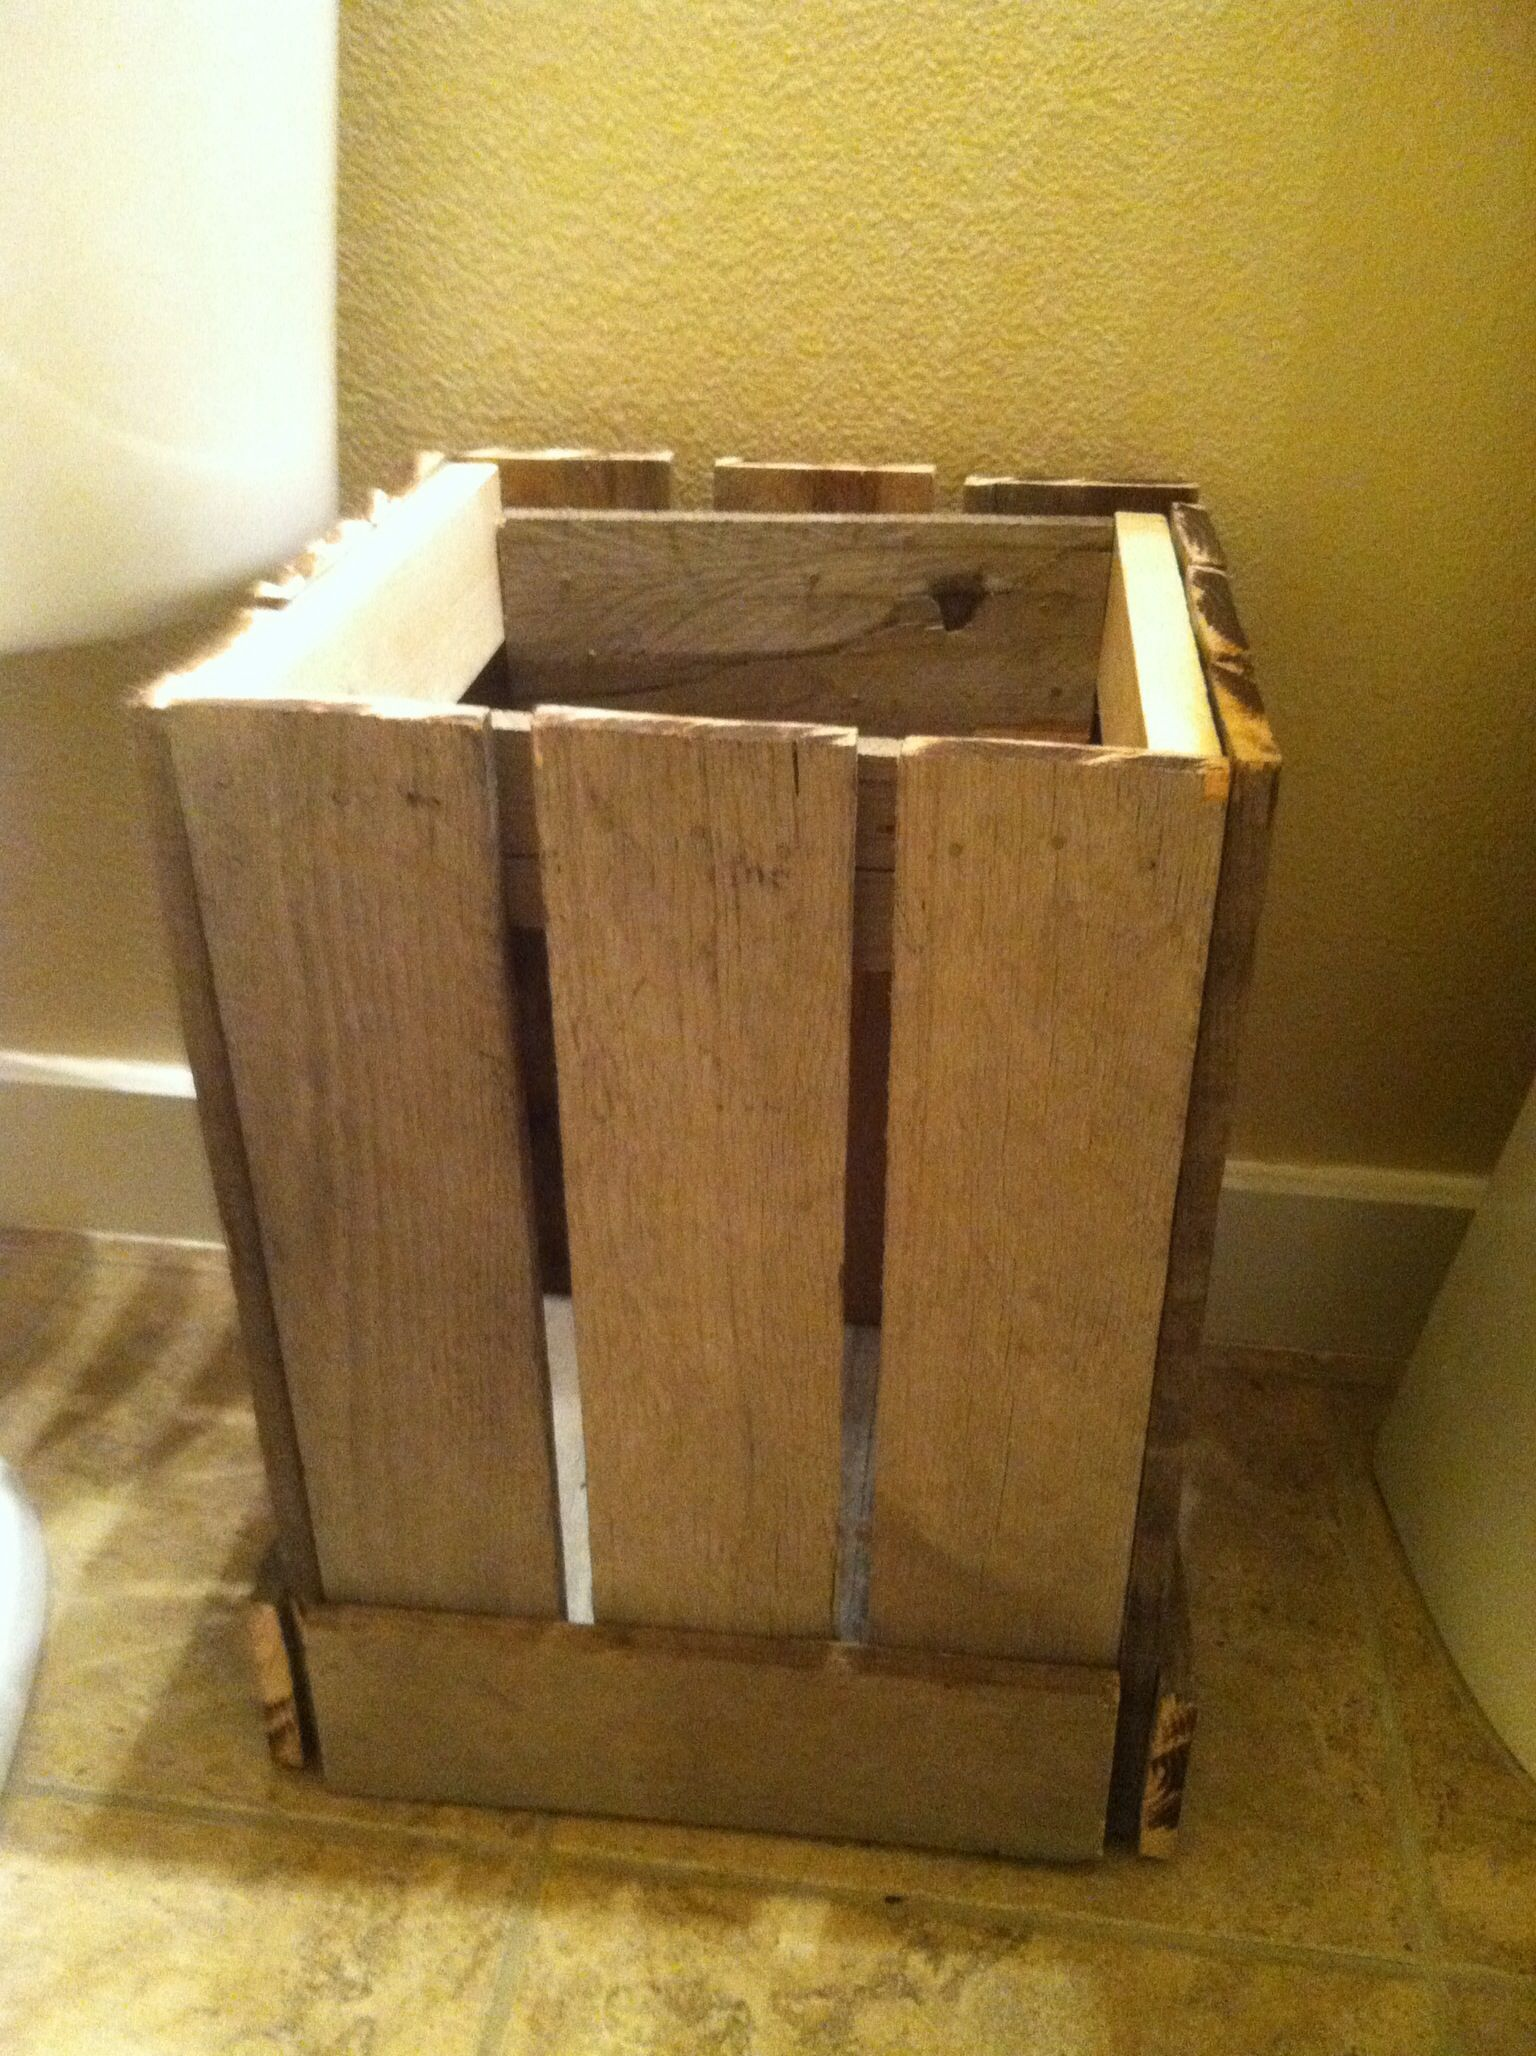 Trash can made out of a pallet and a couple pieces of scrap wood.